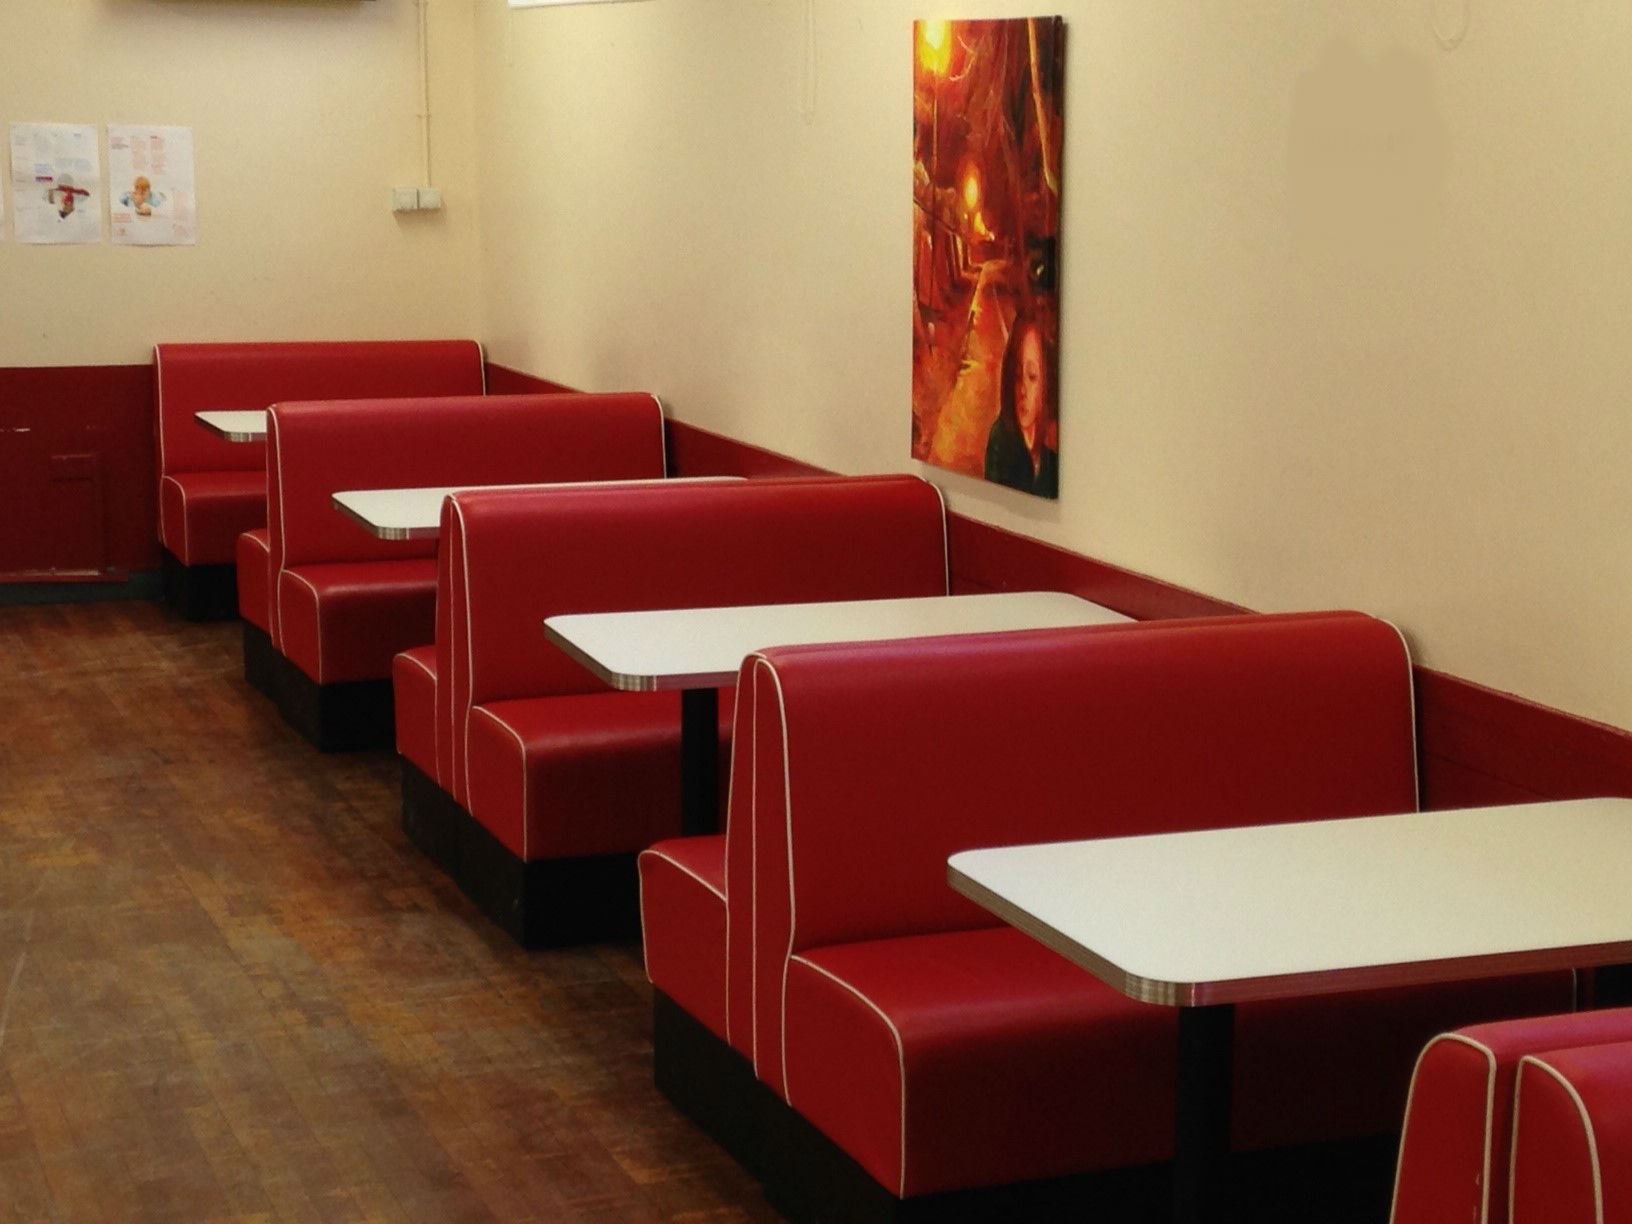 Upholstered restaurant booths, fixed, bench bar seating banquette ...